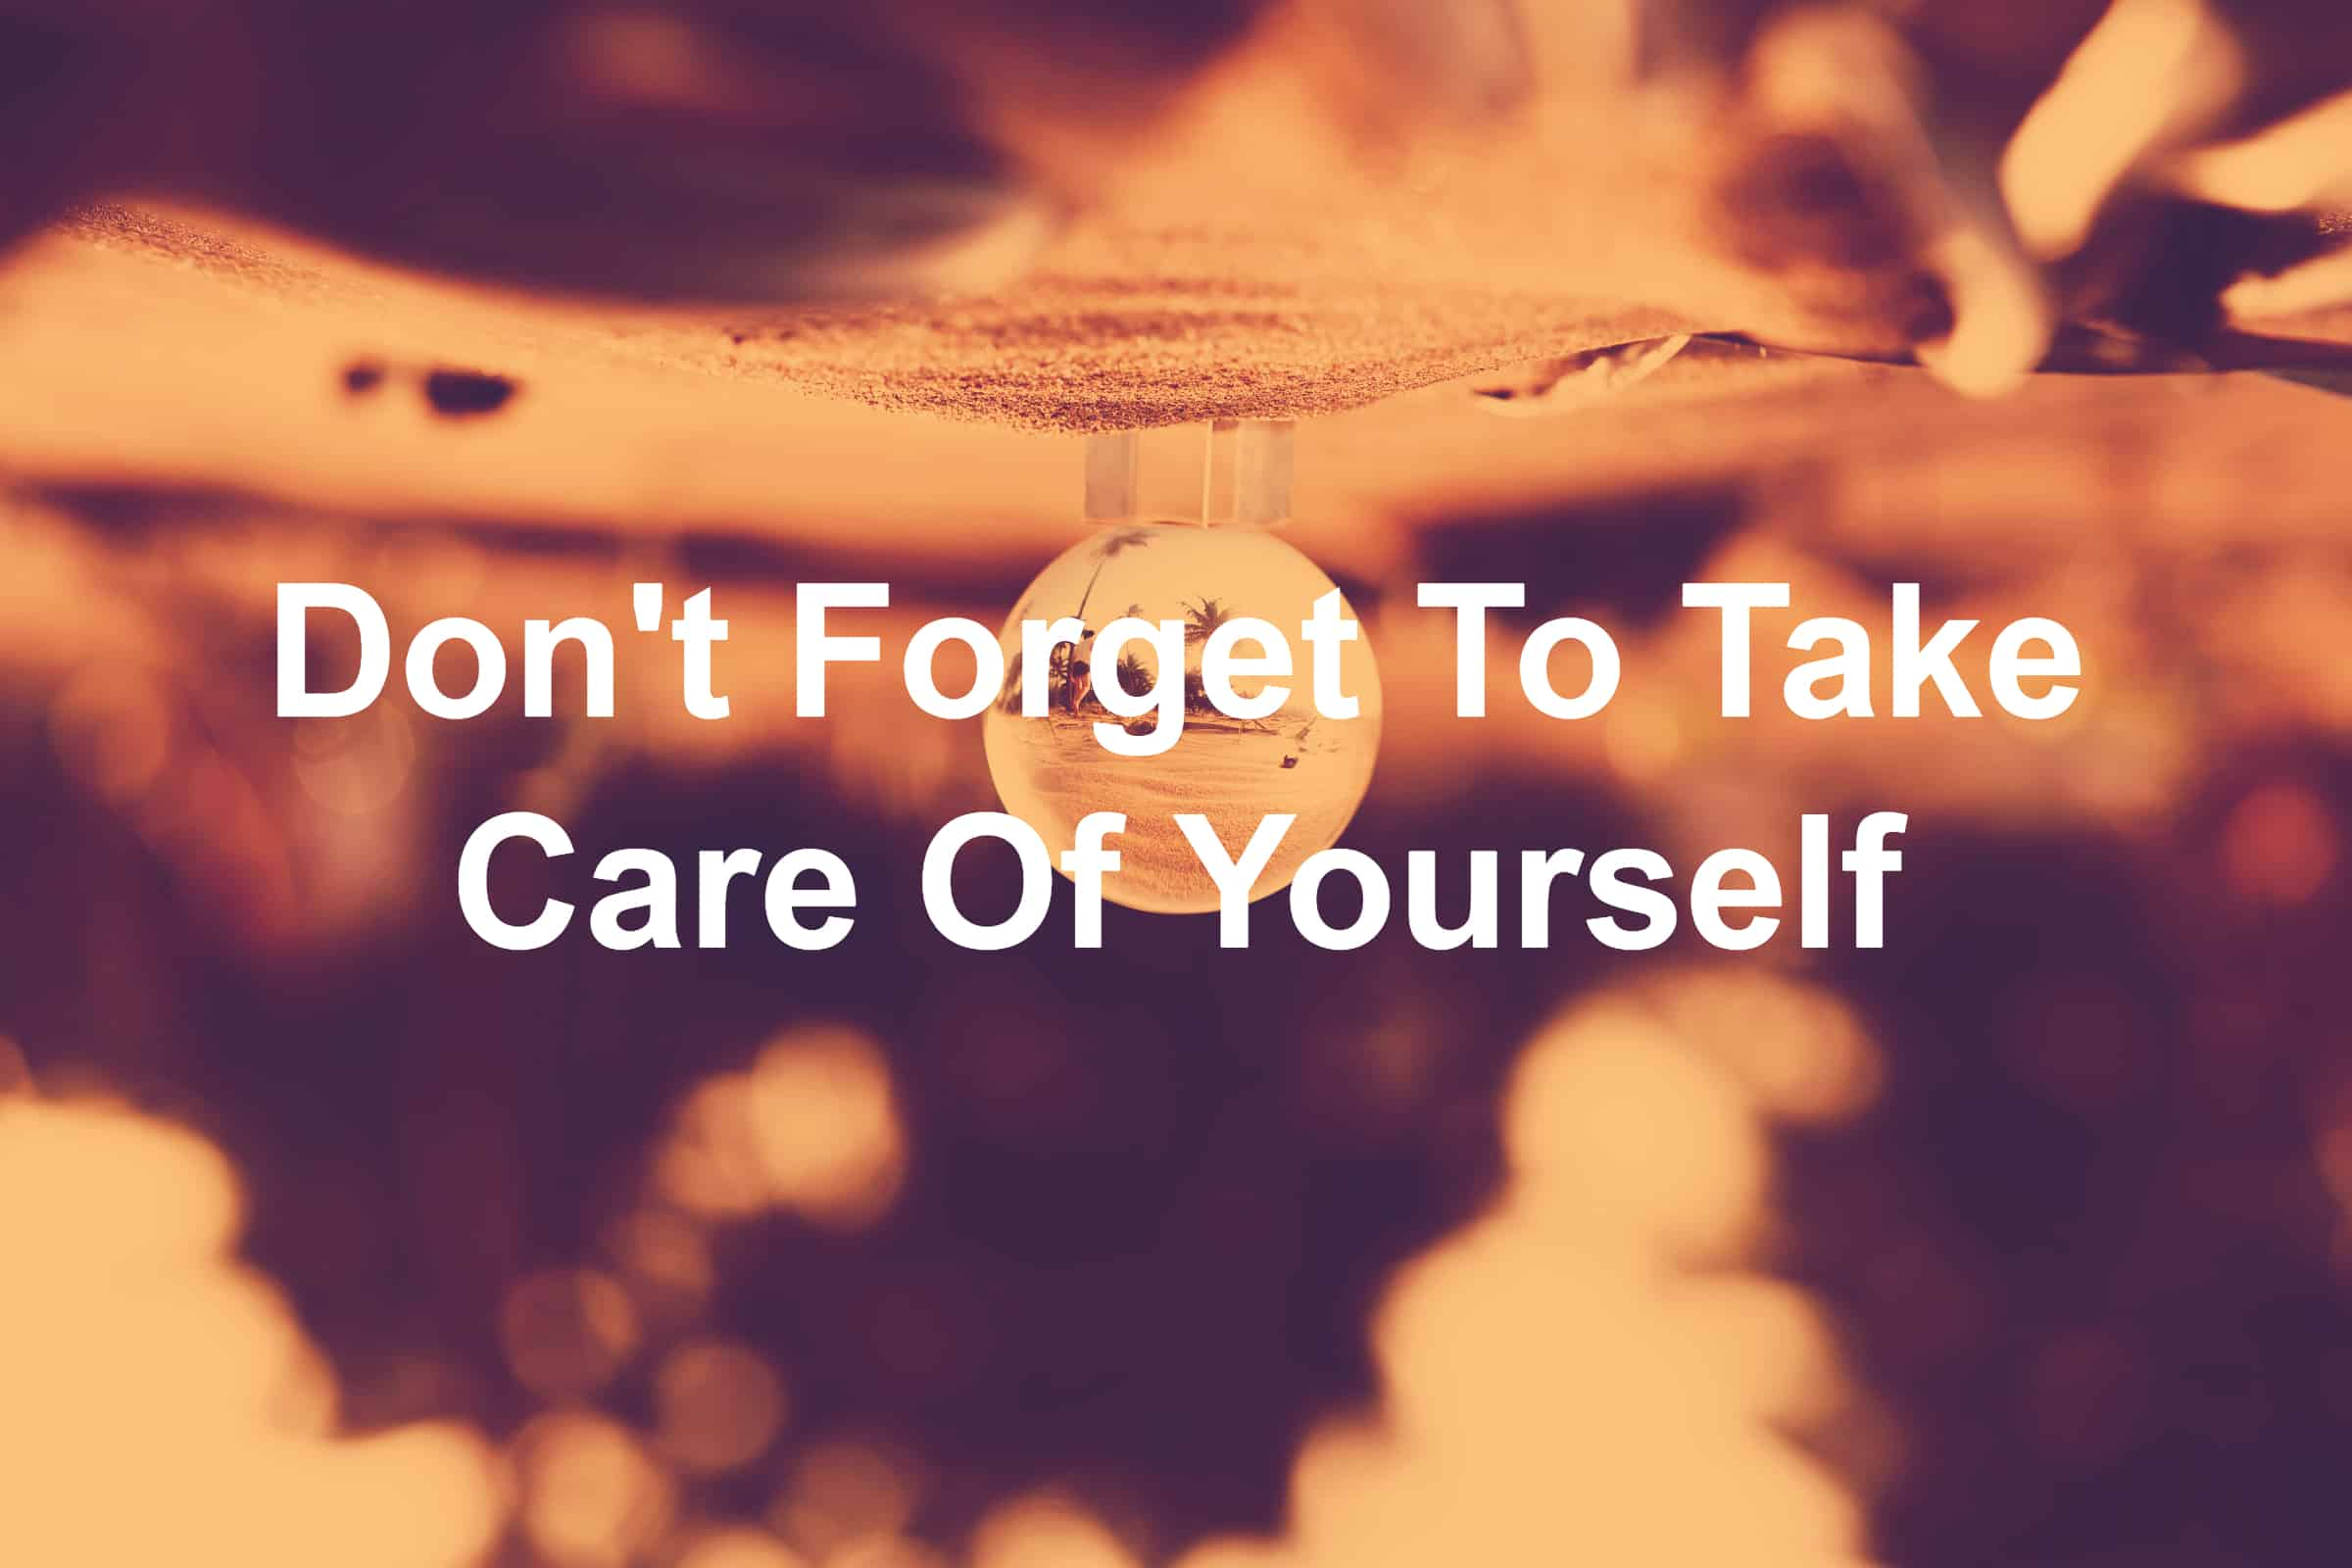 Taking care of yourself is important